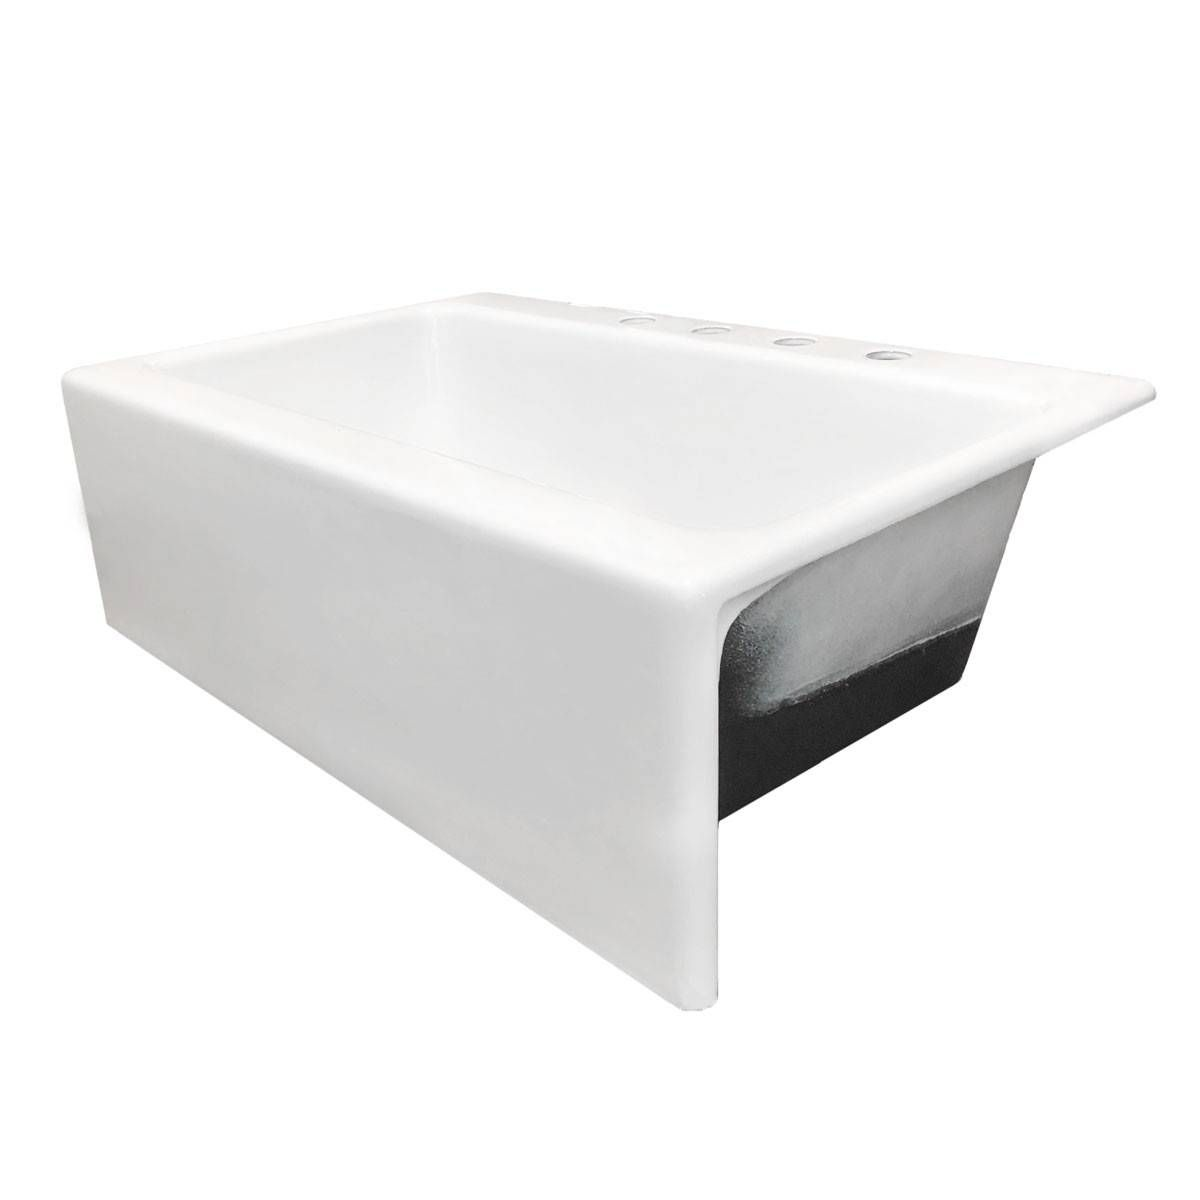 33 Inch Drop In Cast Iron Farmhouse Kitchen Sink In 2020 Farmhouse Sink Kitchen Cast Iron Kitchen Sinks Sink